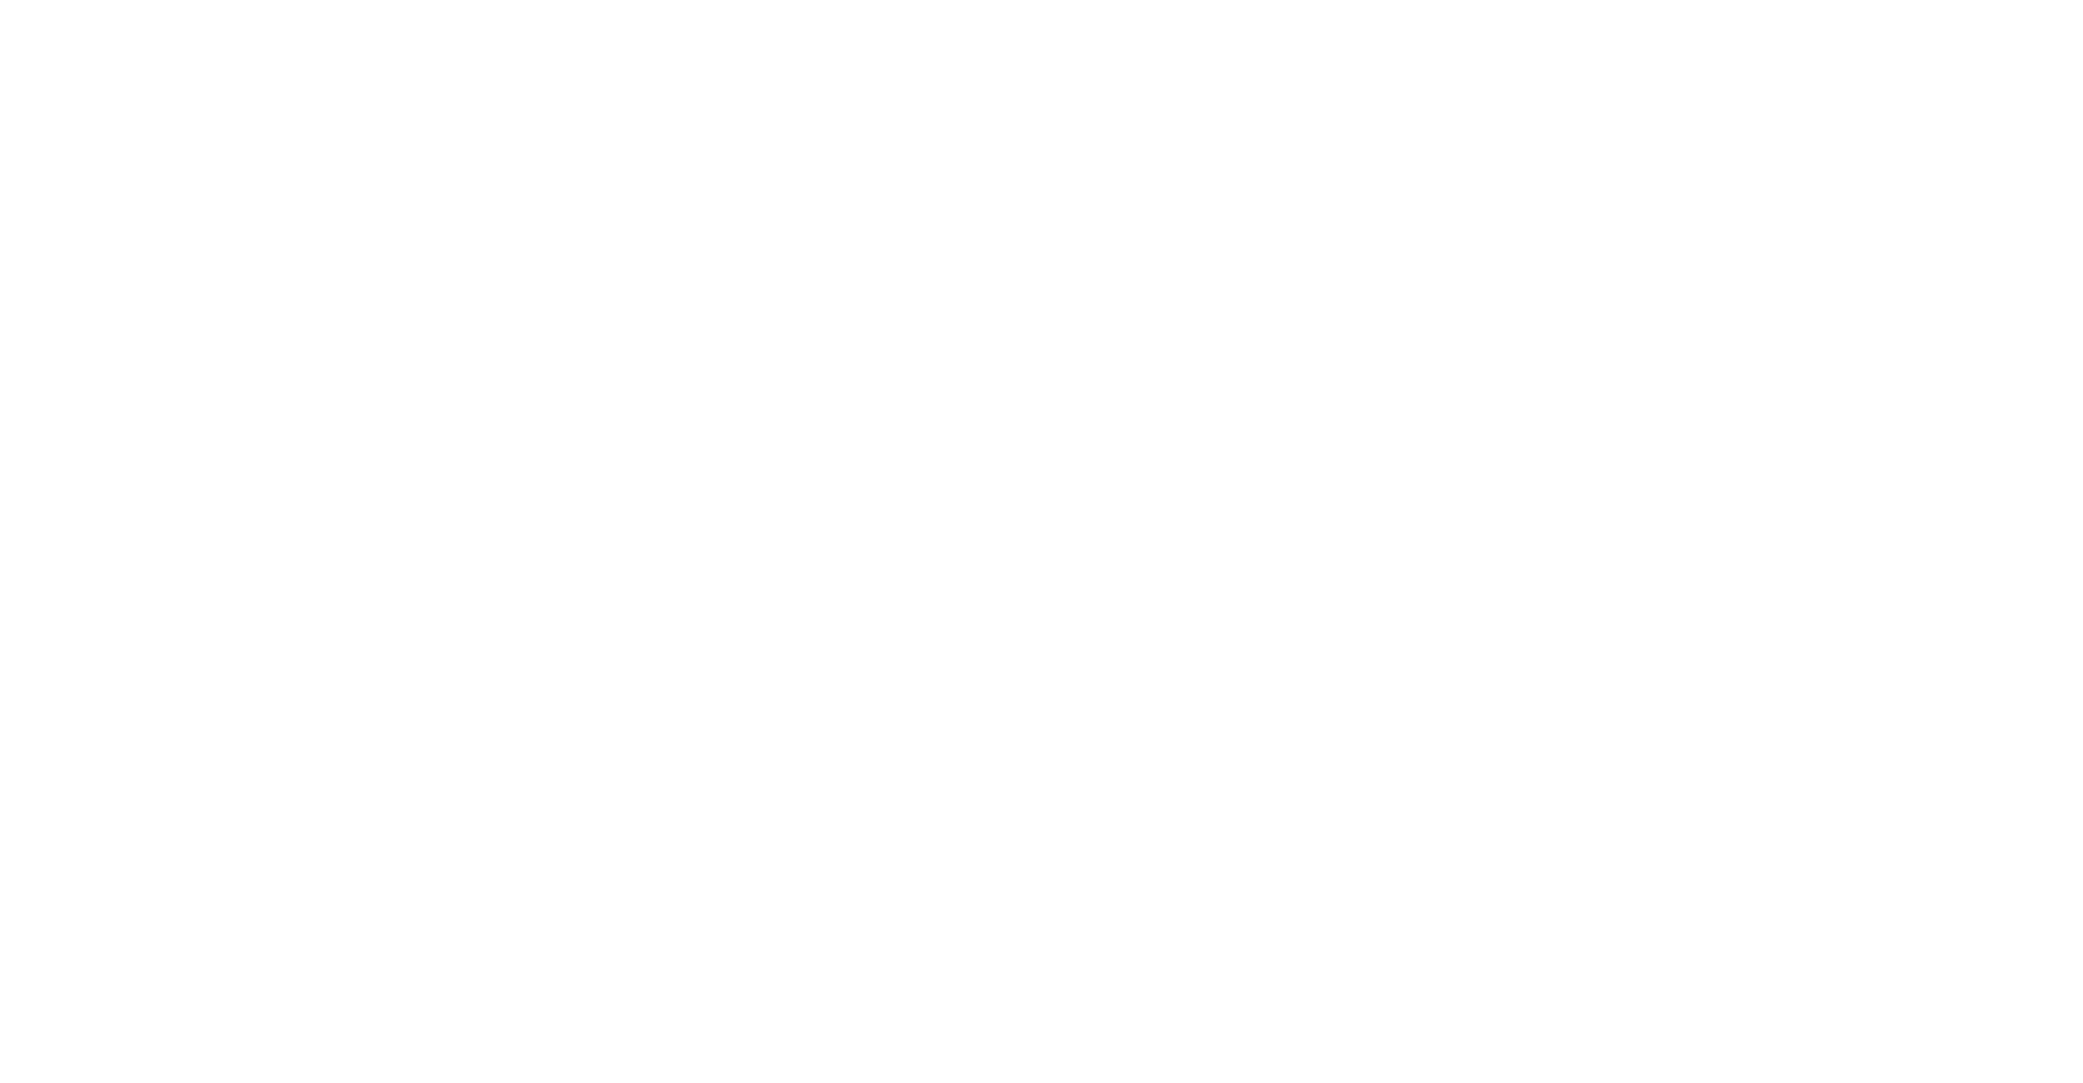 quote from Jane